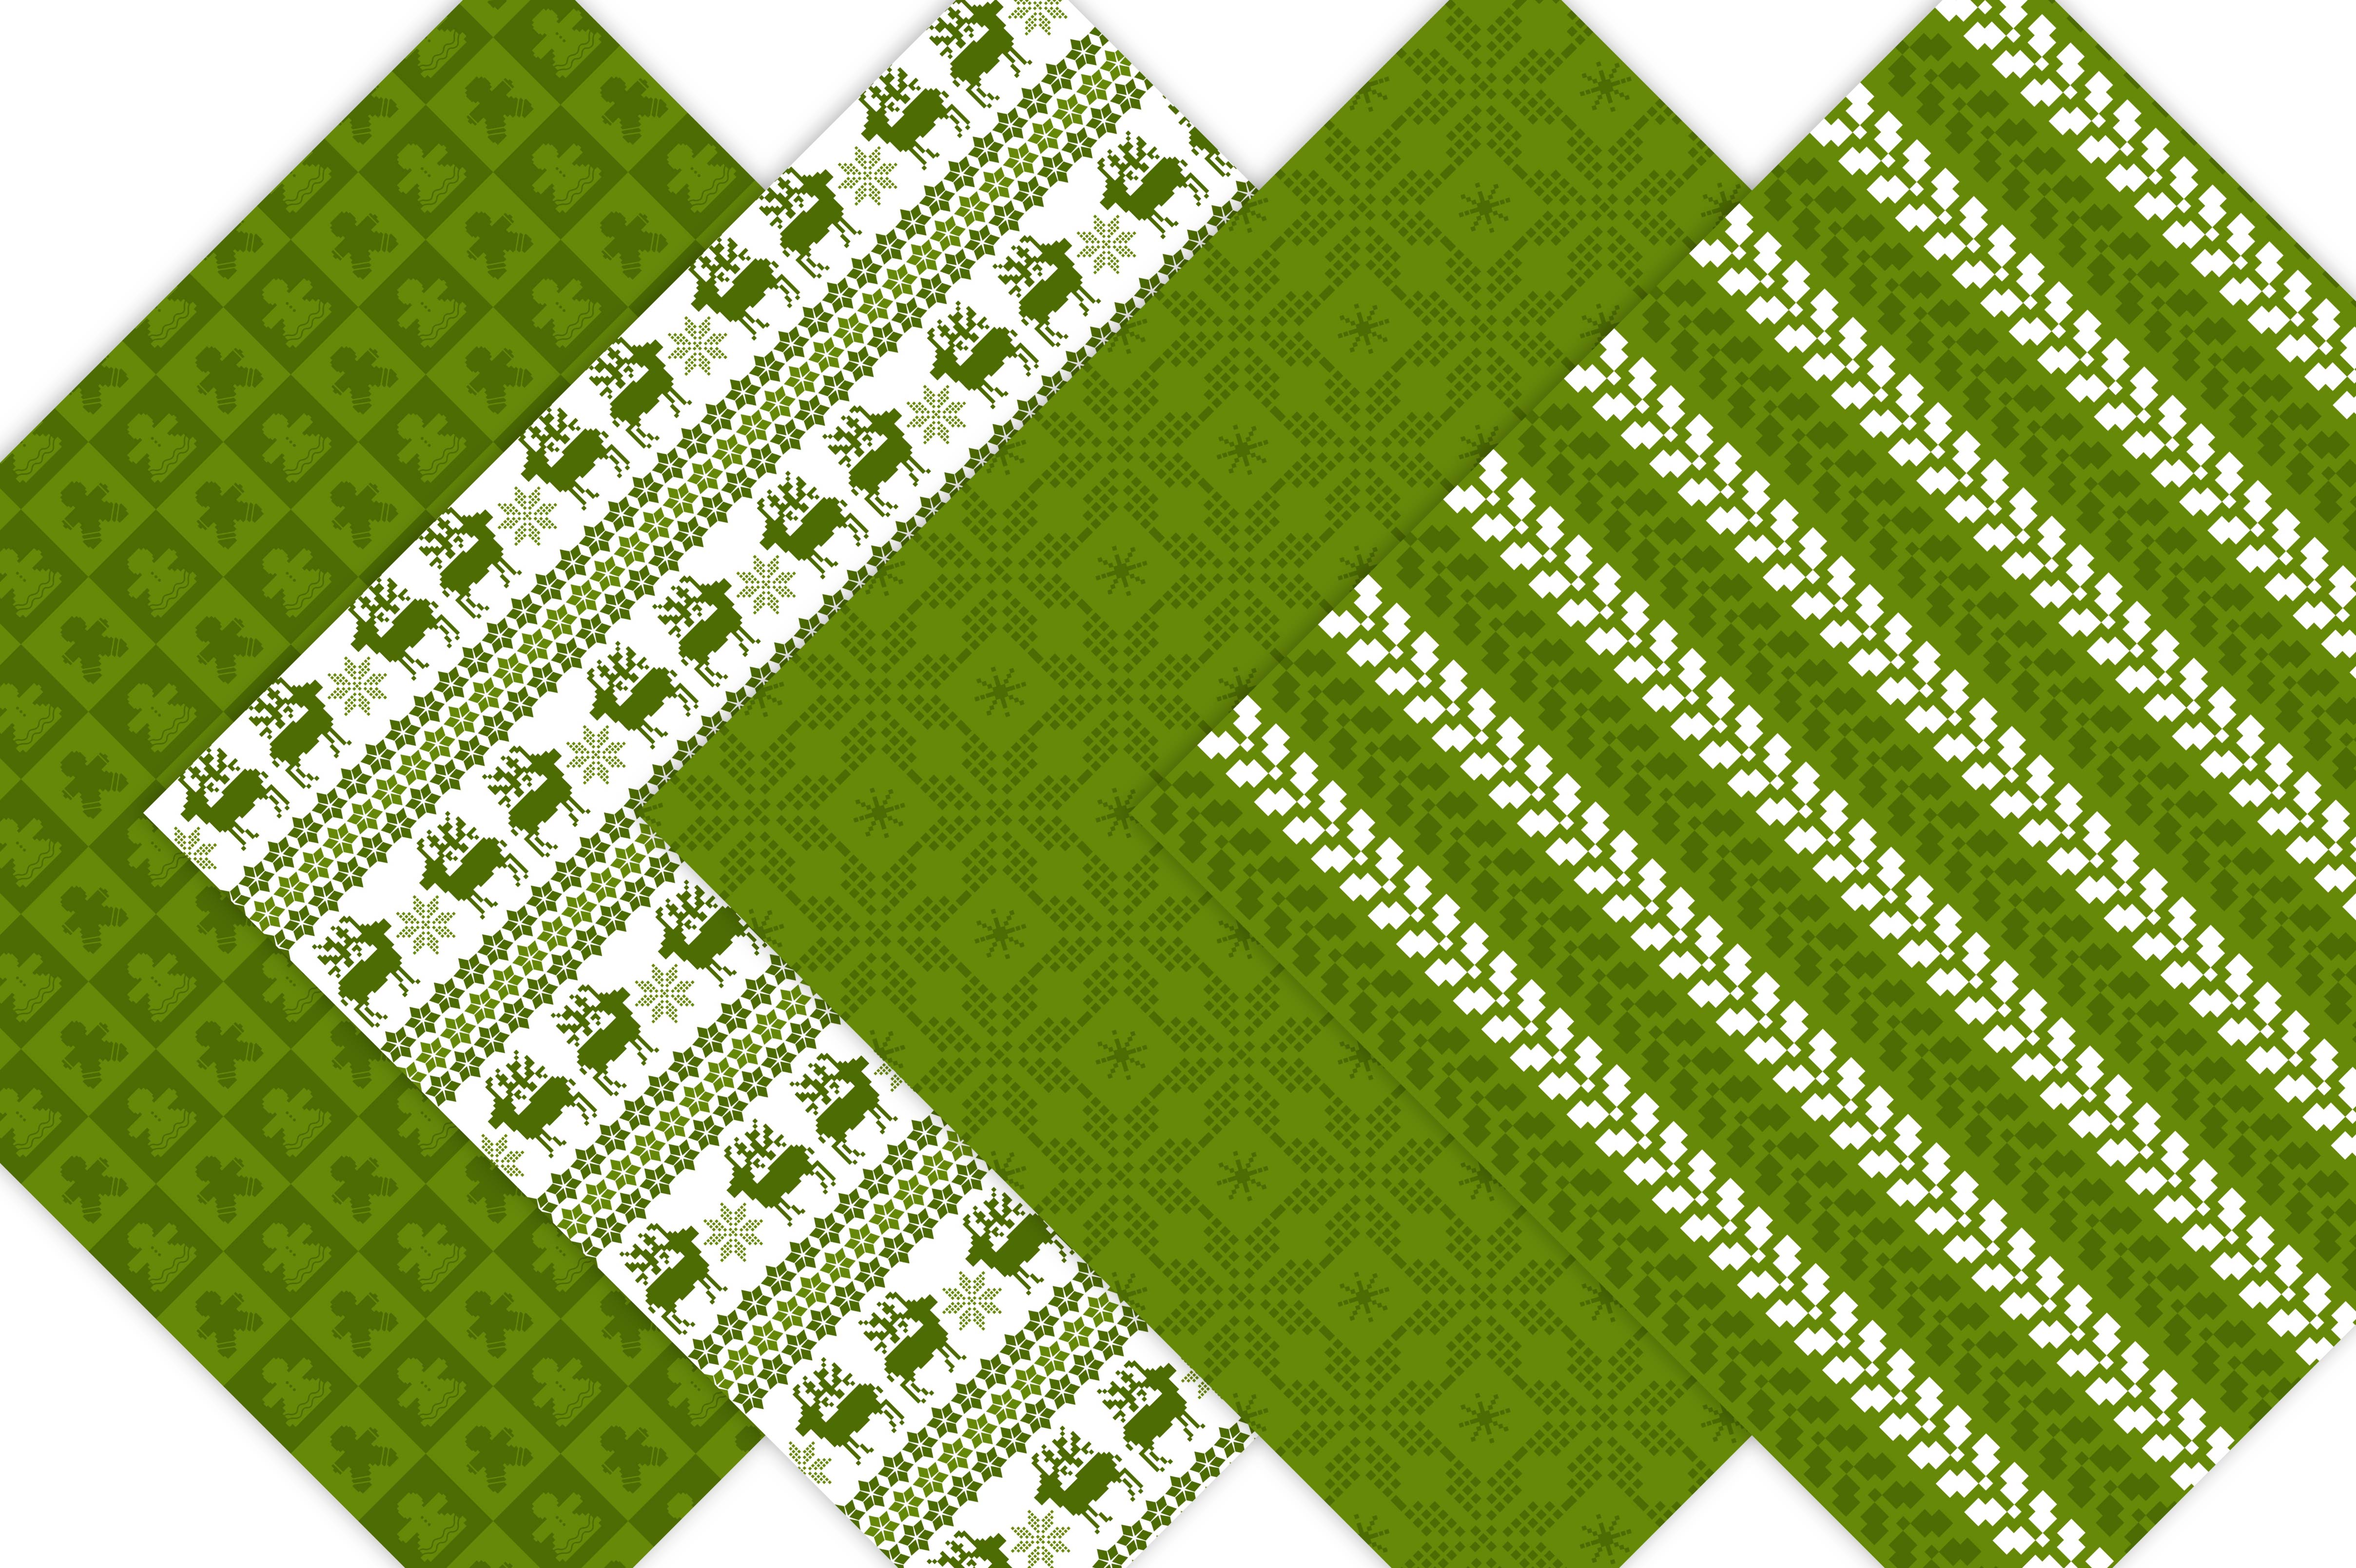 Green Nordic Patterns example image 3